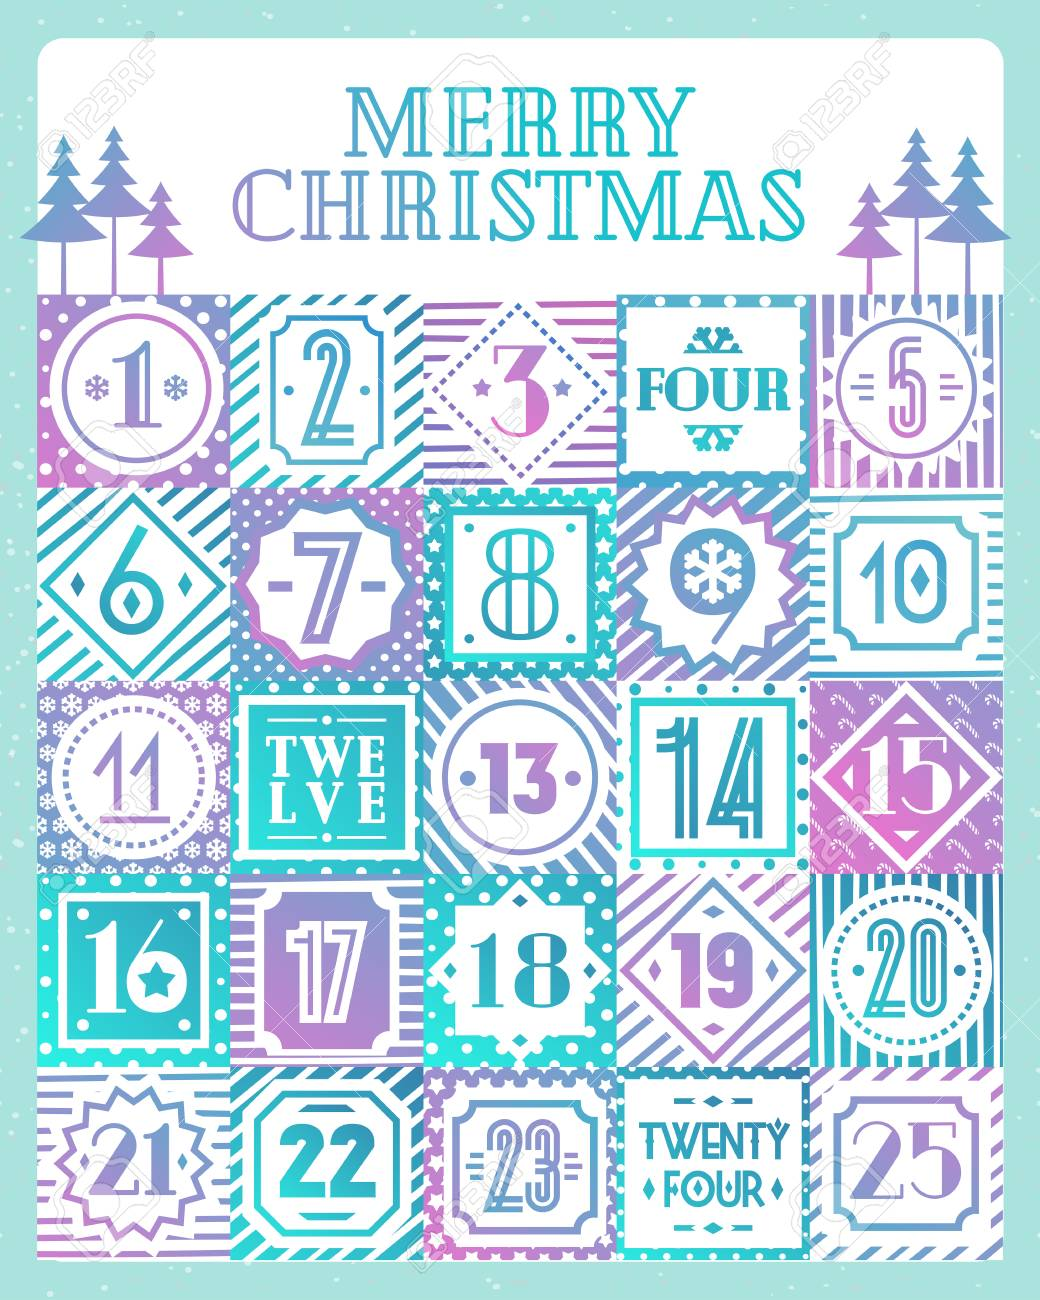 Christmas Countdown Calendar.Christmas Countdown Calendar Printable Tags Color Style With